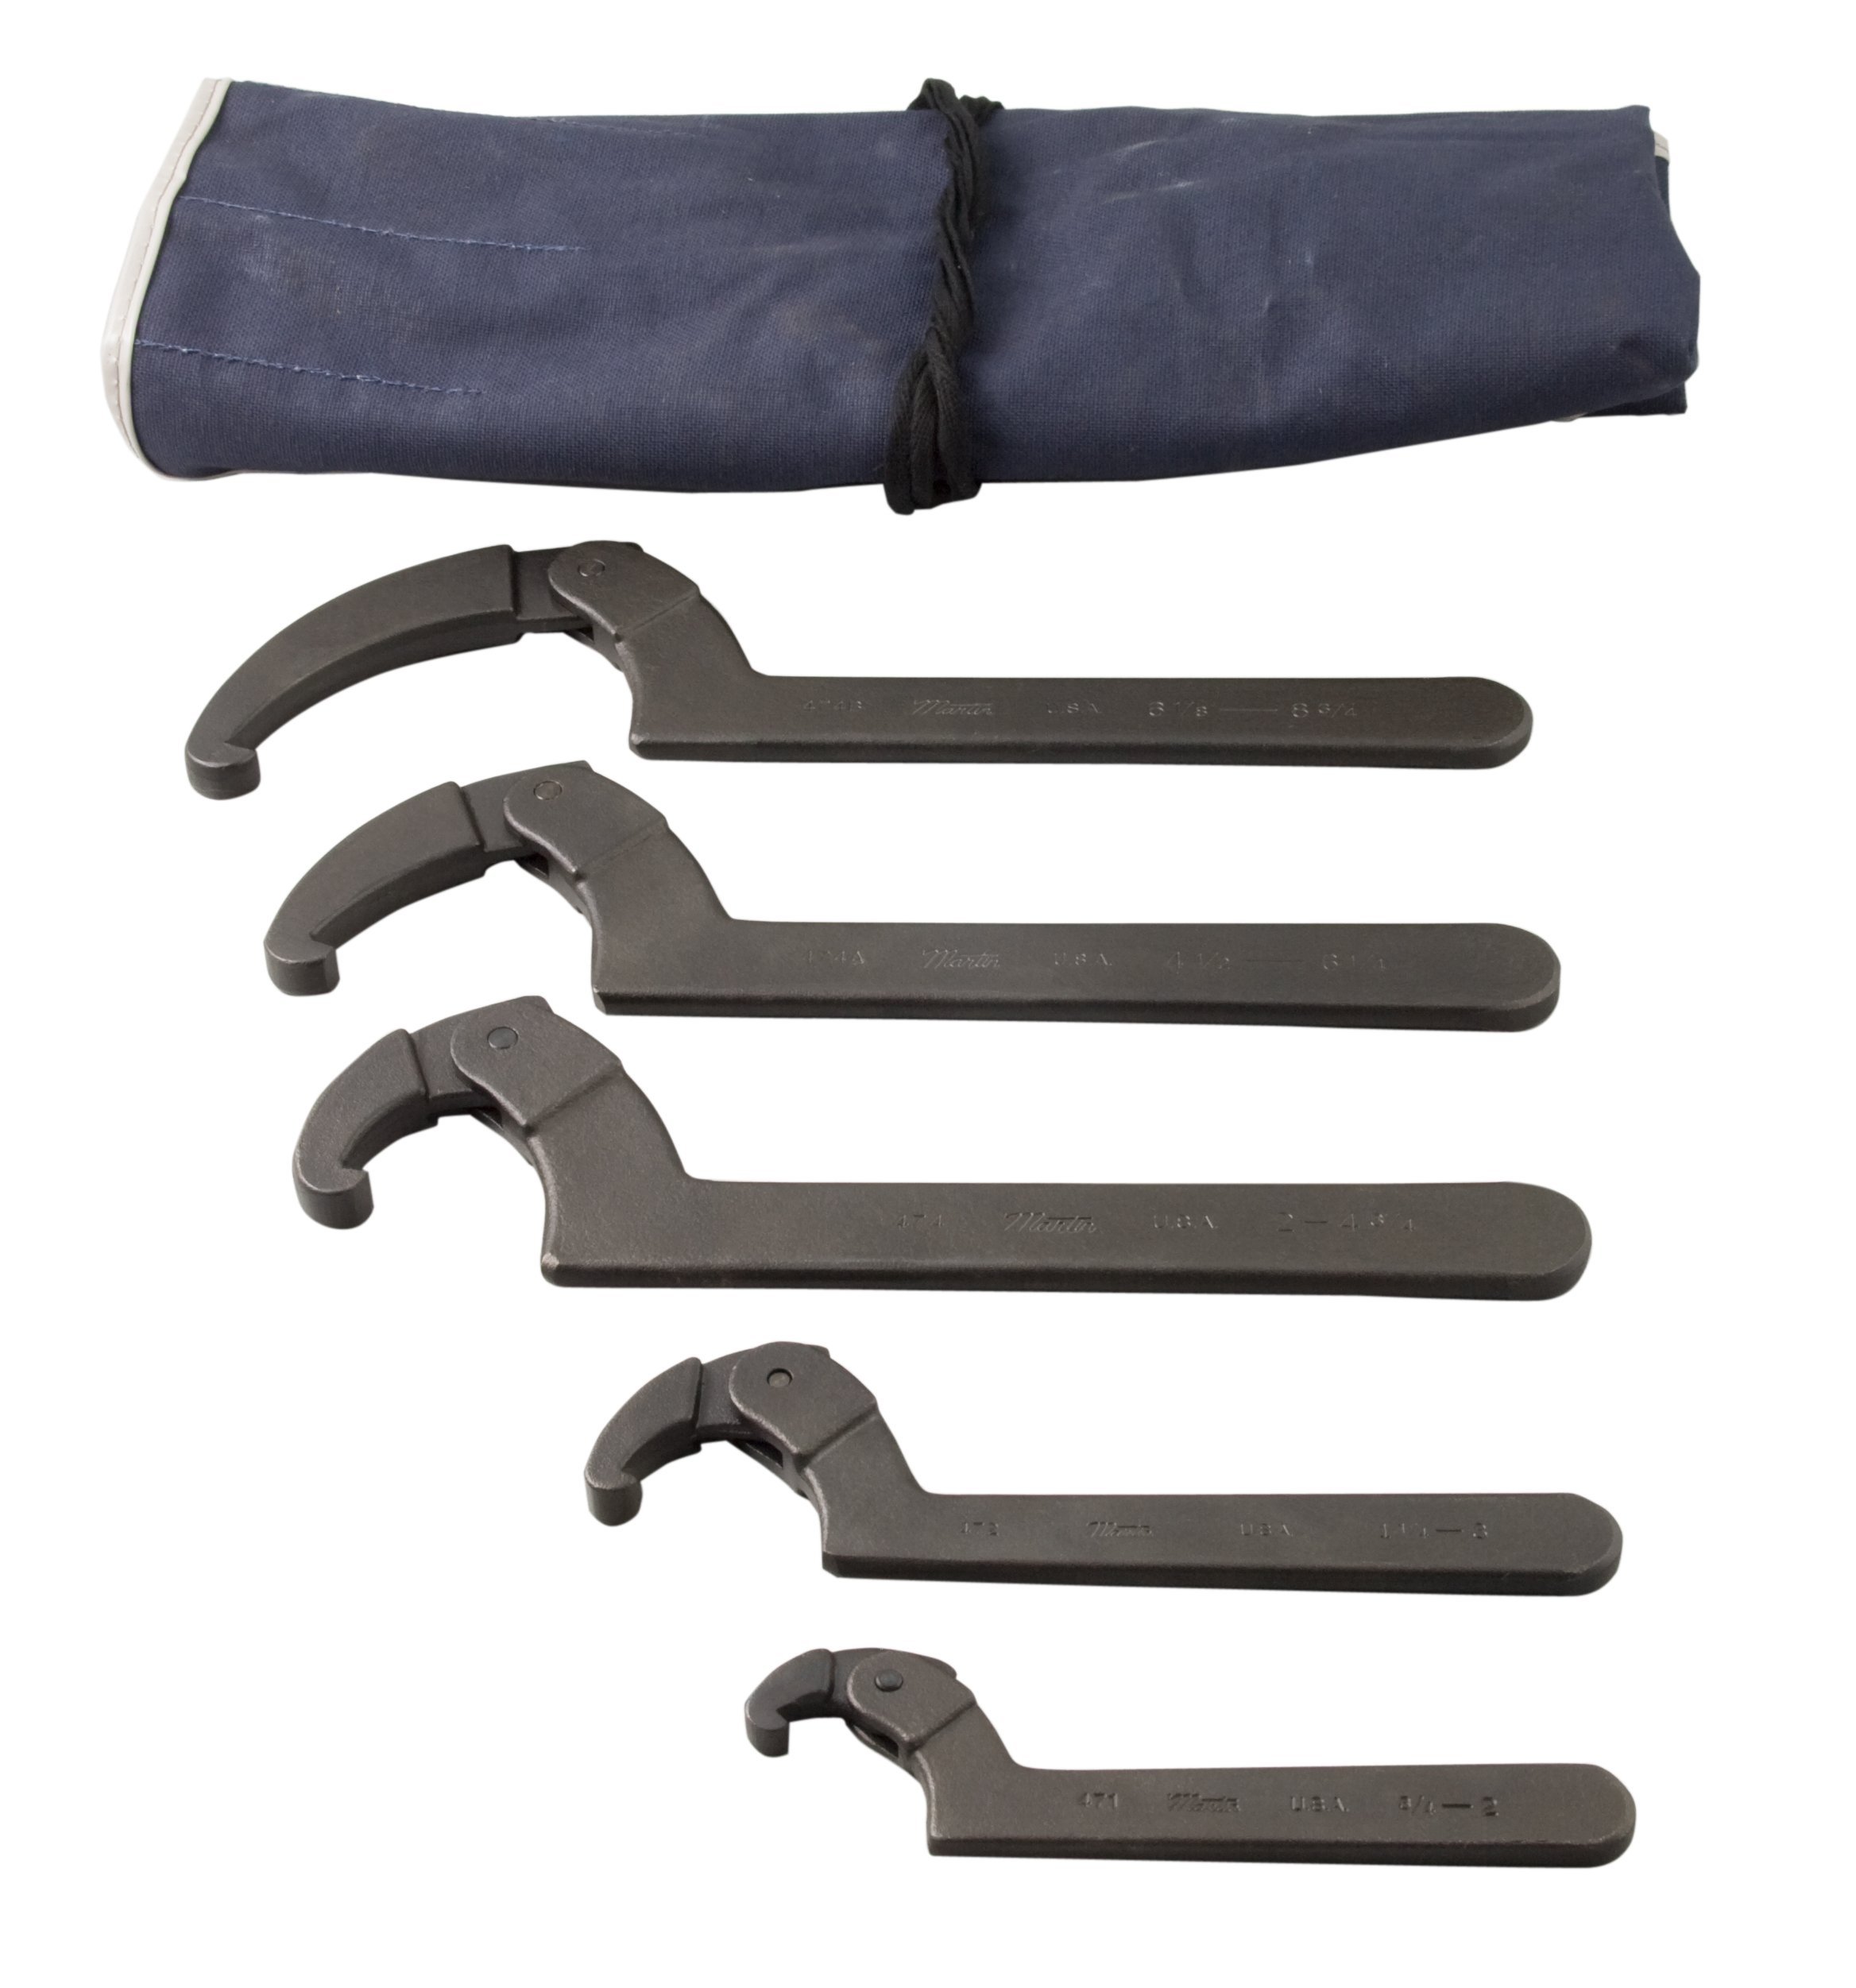 Martin SHW5K Adjustable Hook Spanner Wrench Set, 5 Pieces ranging from 3/4'' to 8-3/4'' in Kit Bag, Industrial Black Finish